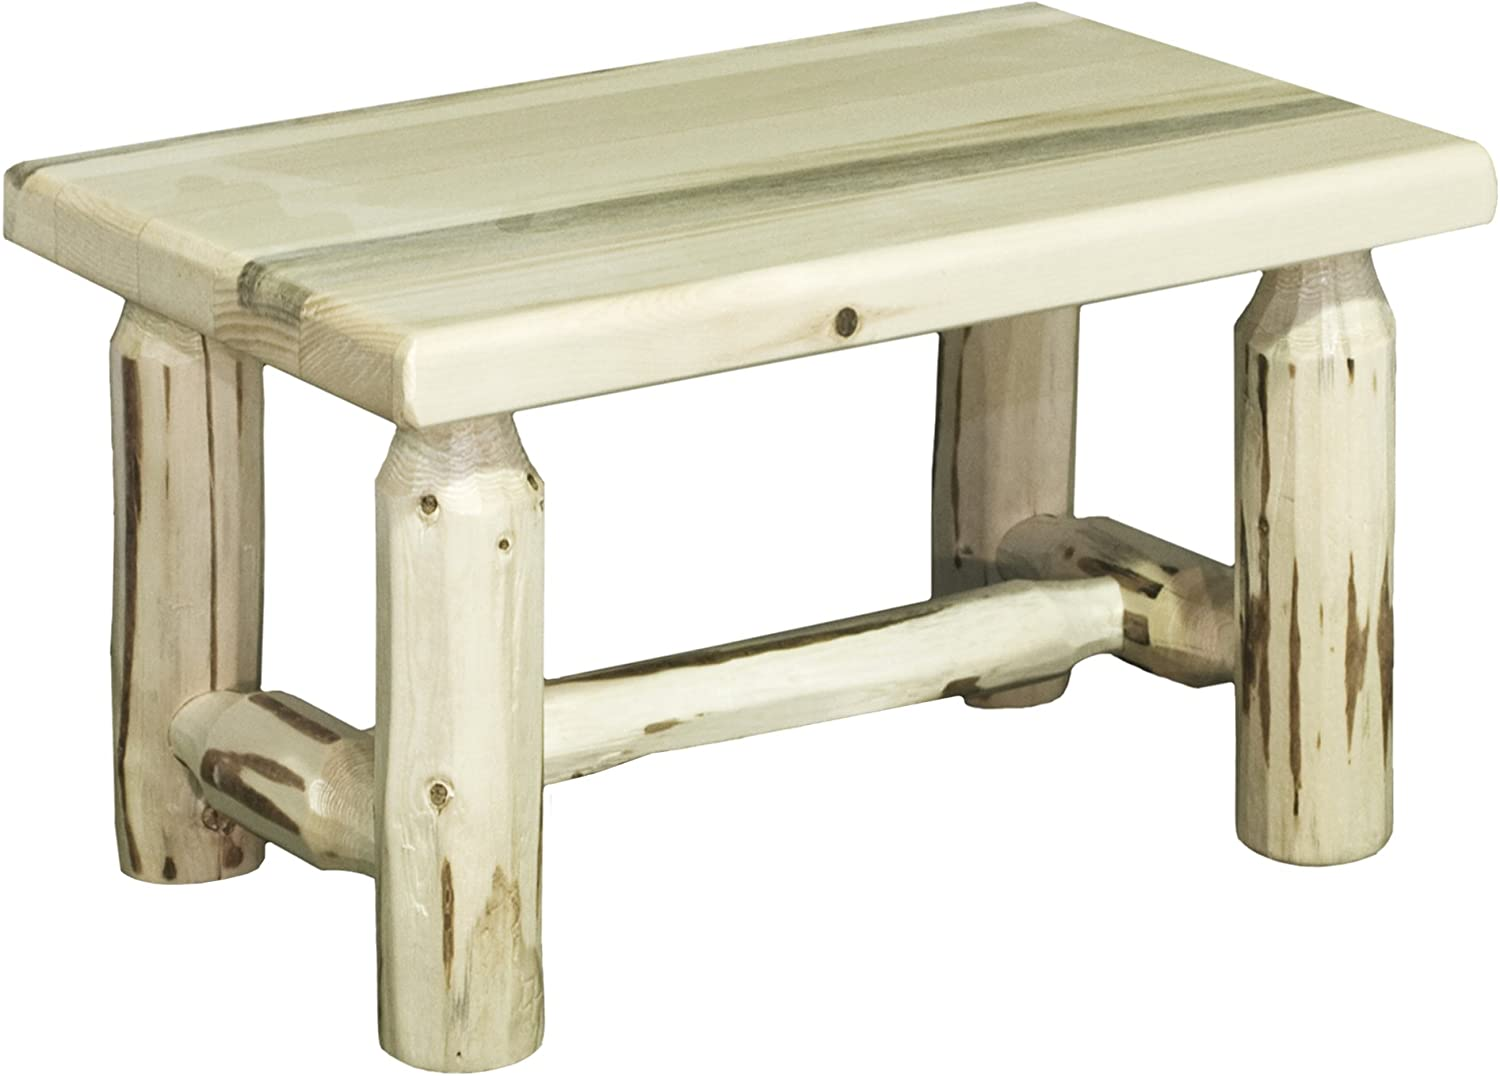 Montana Woodworks Montana Collection Footstool, Clear Lacquer Finish